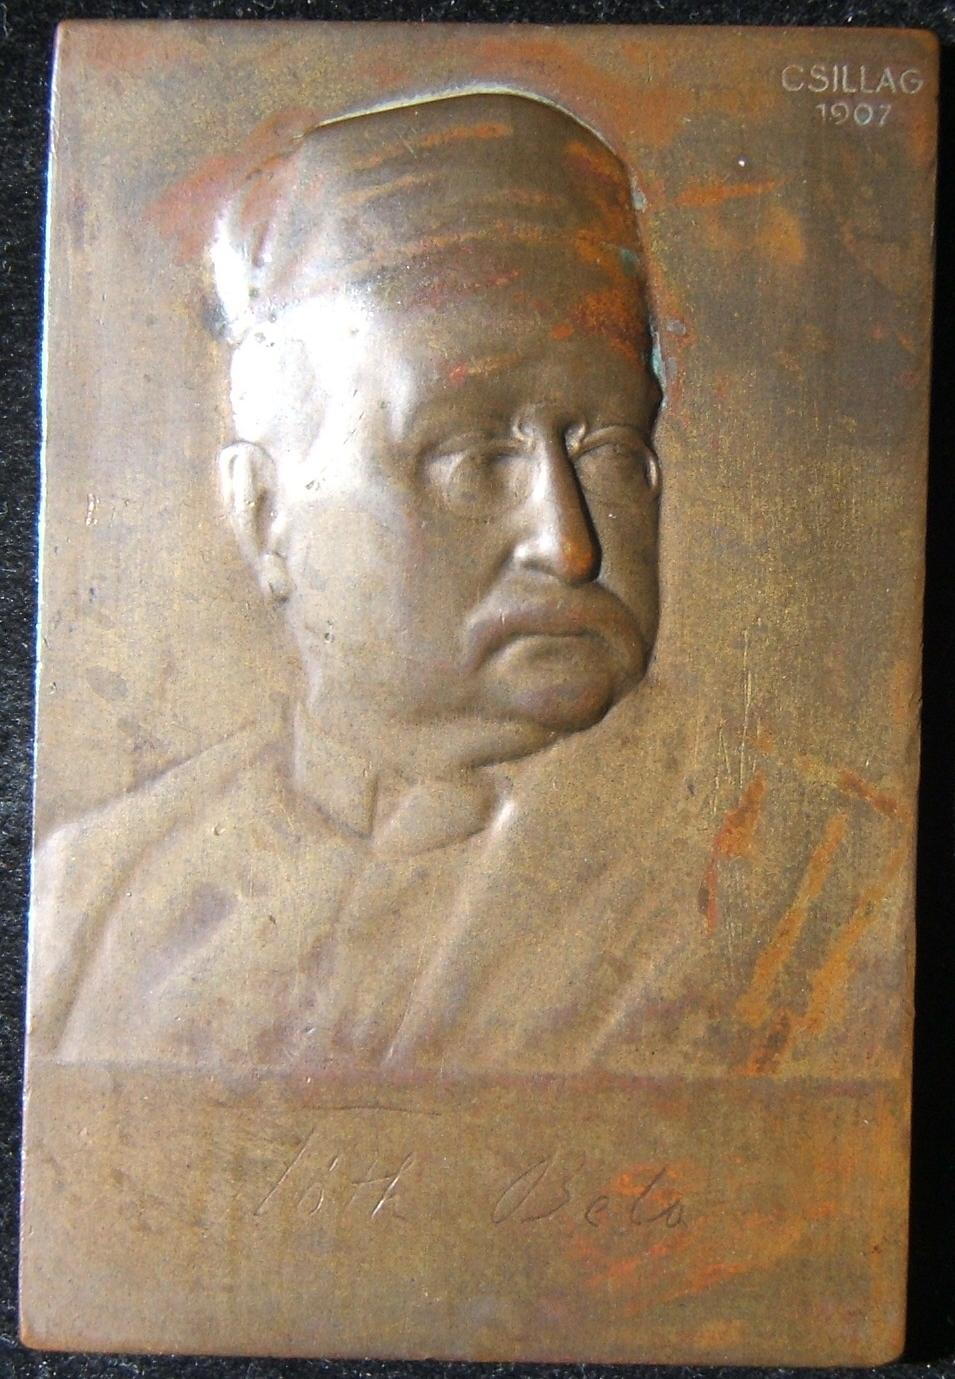 Hungary: B�la T�th uniface bronze plaque, 1907; by Jewish medallist Istvan (Stephan) Csillag; size: 50x74.75 mm; weight: 104.8g. T�th (1857-1907) was a journalist and writer. Fried